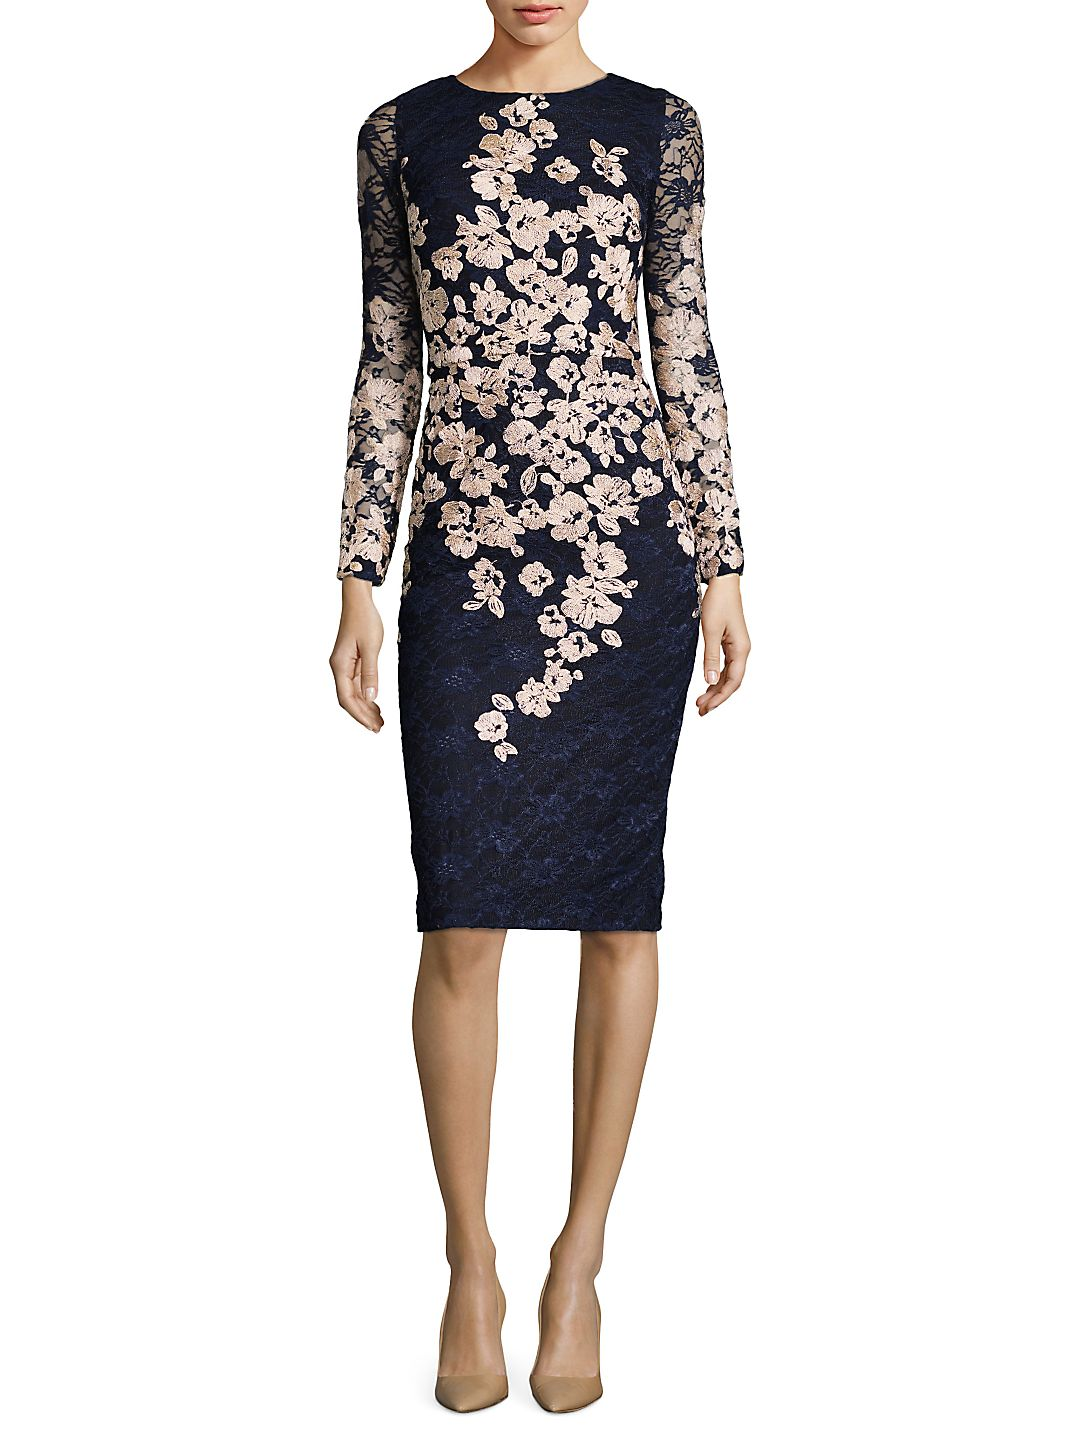 Embroidered Floral Long Sleeved Dress